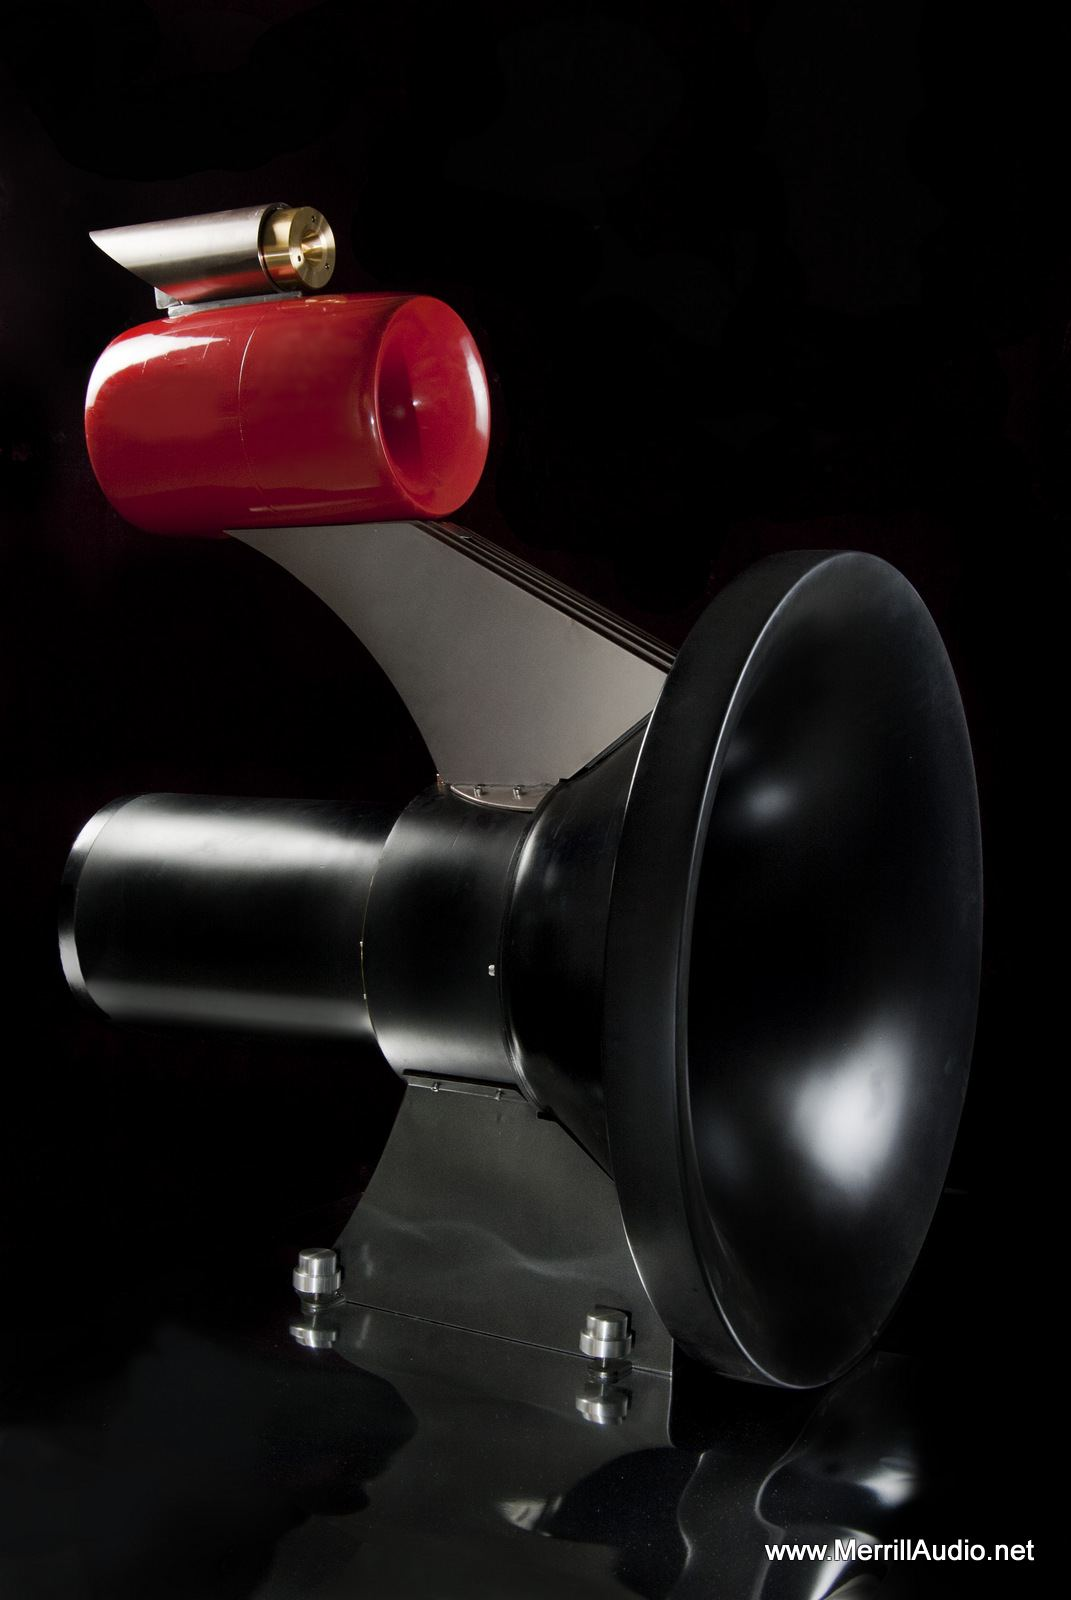 Stacatto Horn Speakers Front View Red